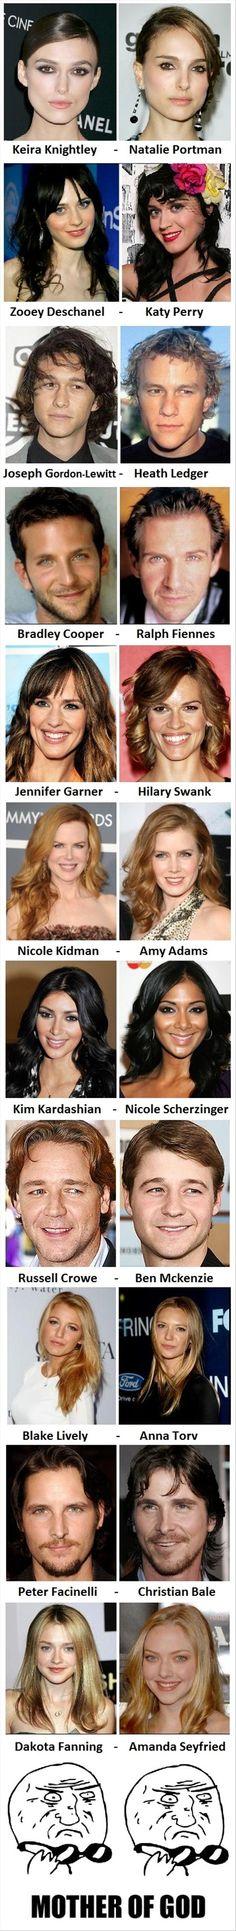 Celebrity Look-A-Likes